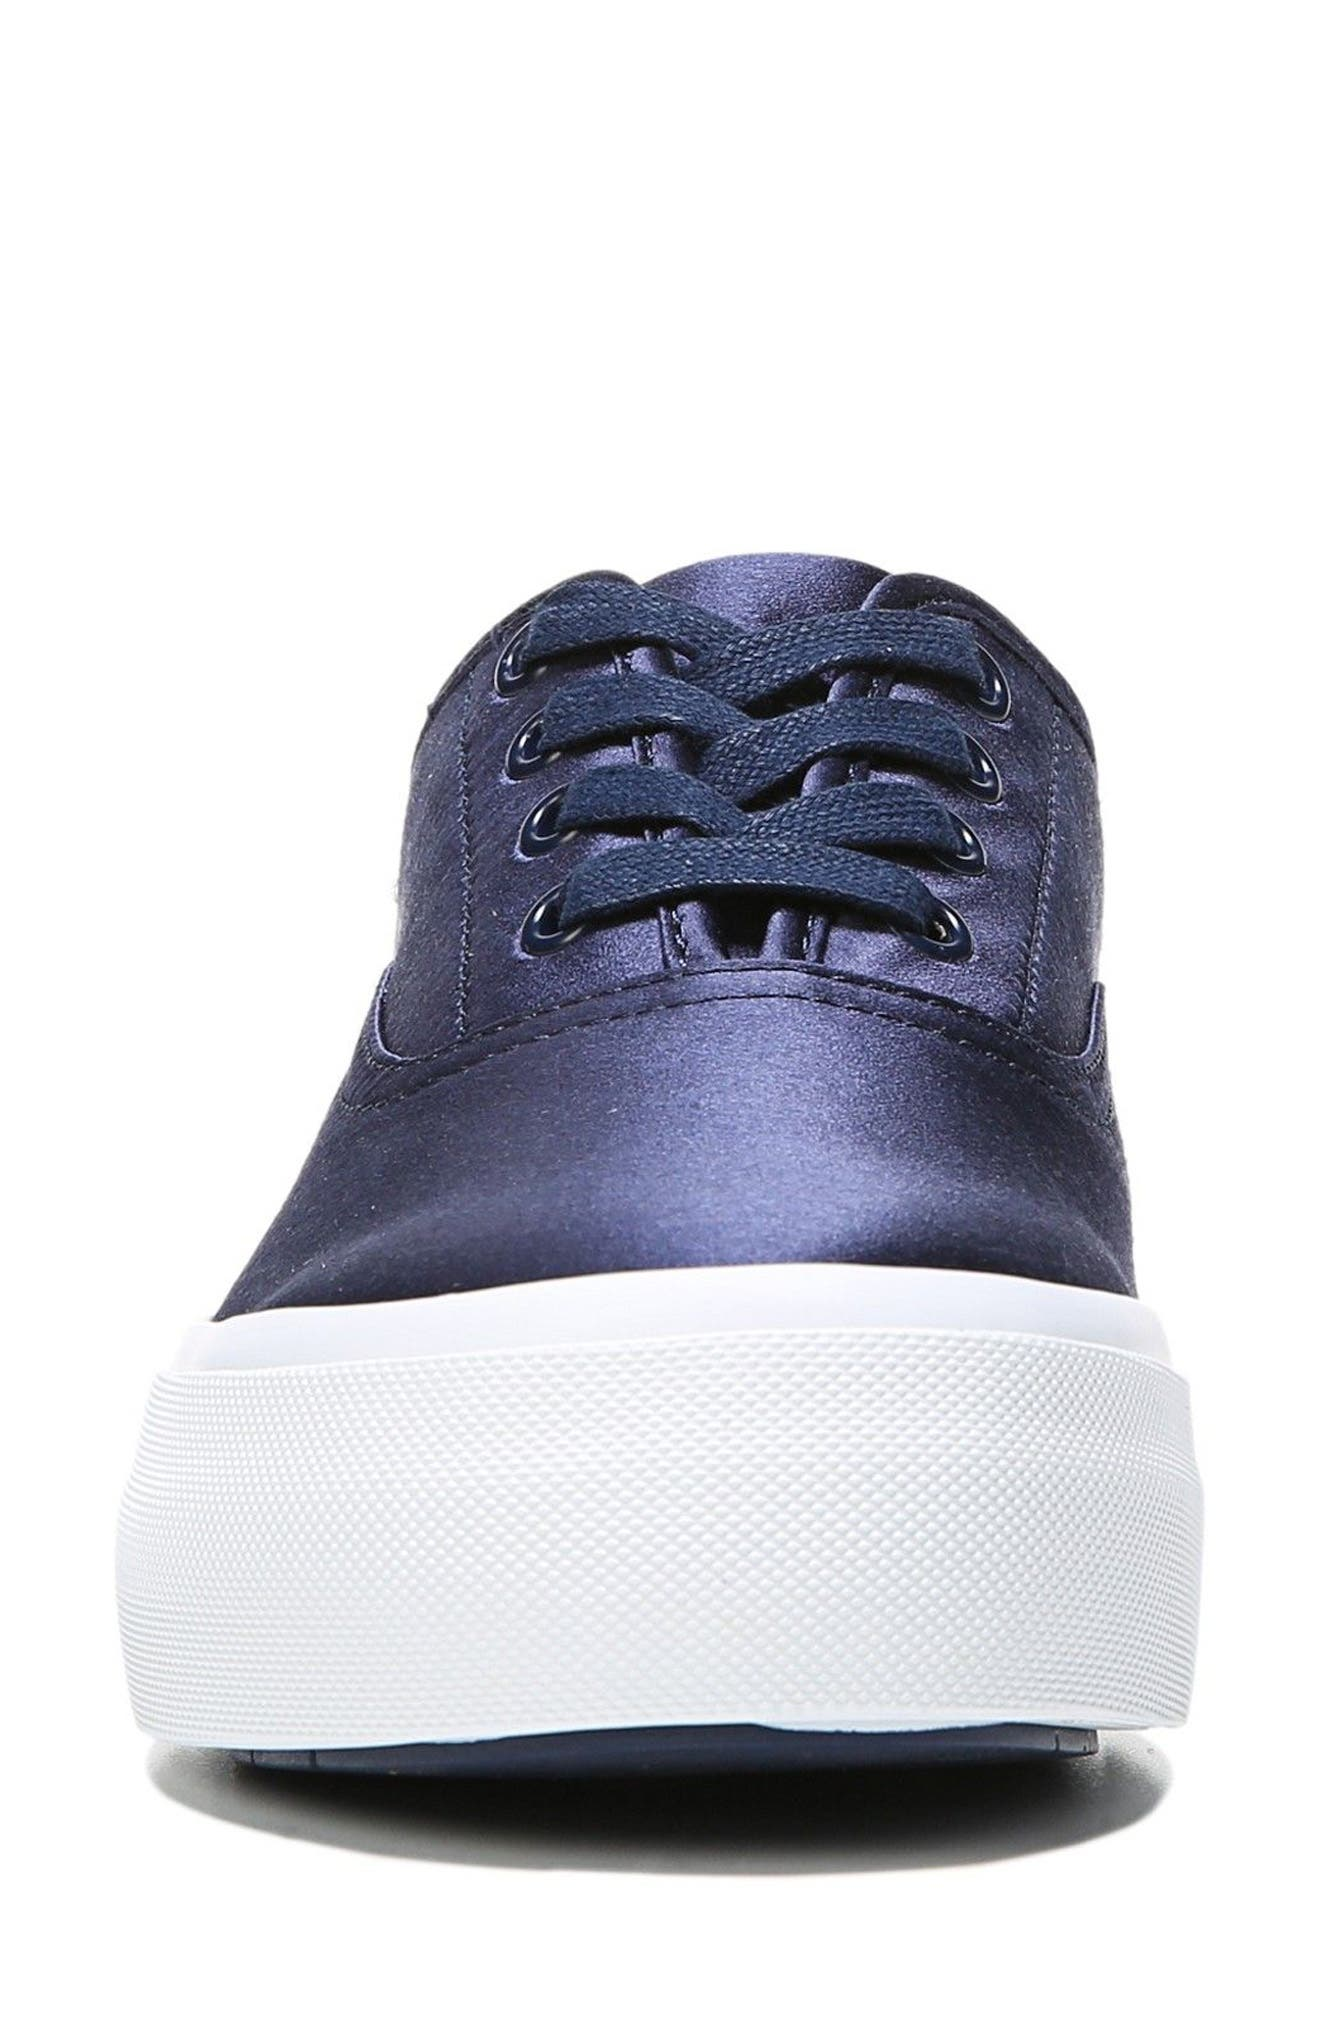 Copley Platform Sneaker,                             Alternate thumbnail 4, color,                             Navy